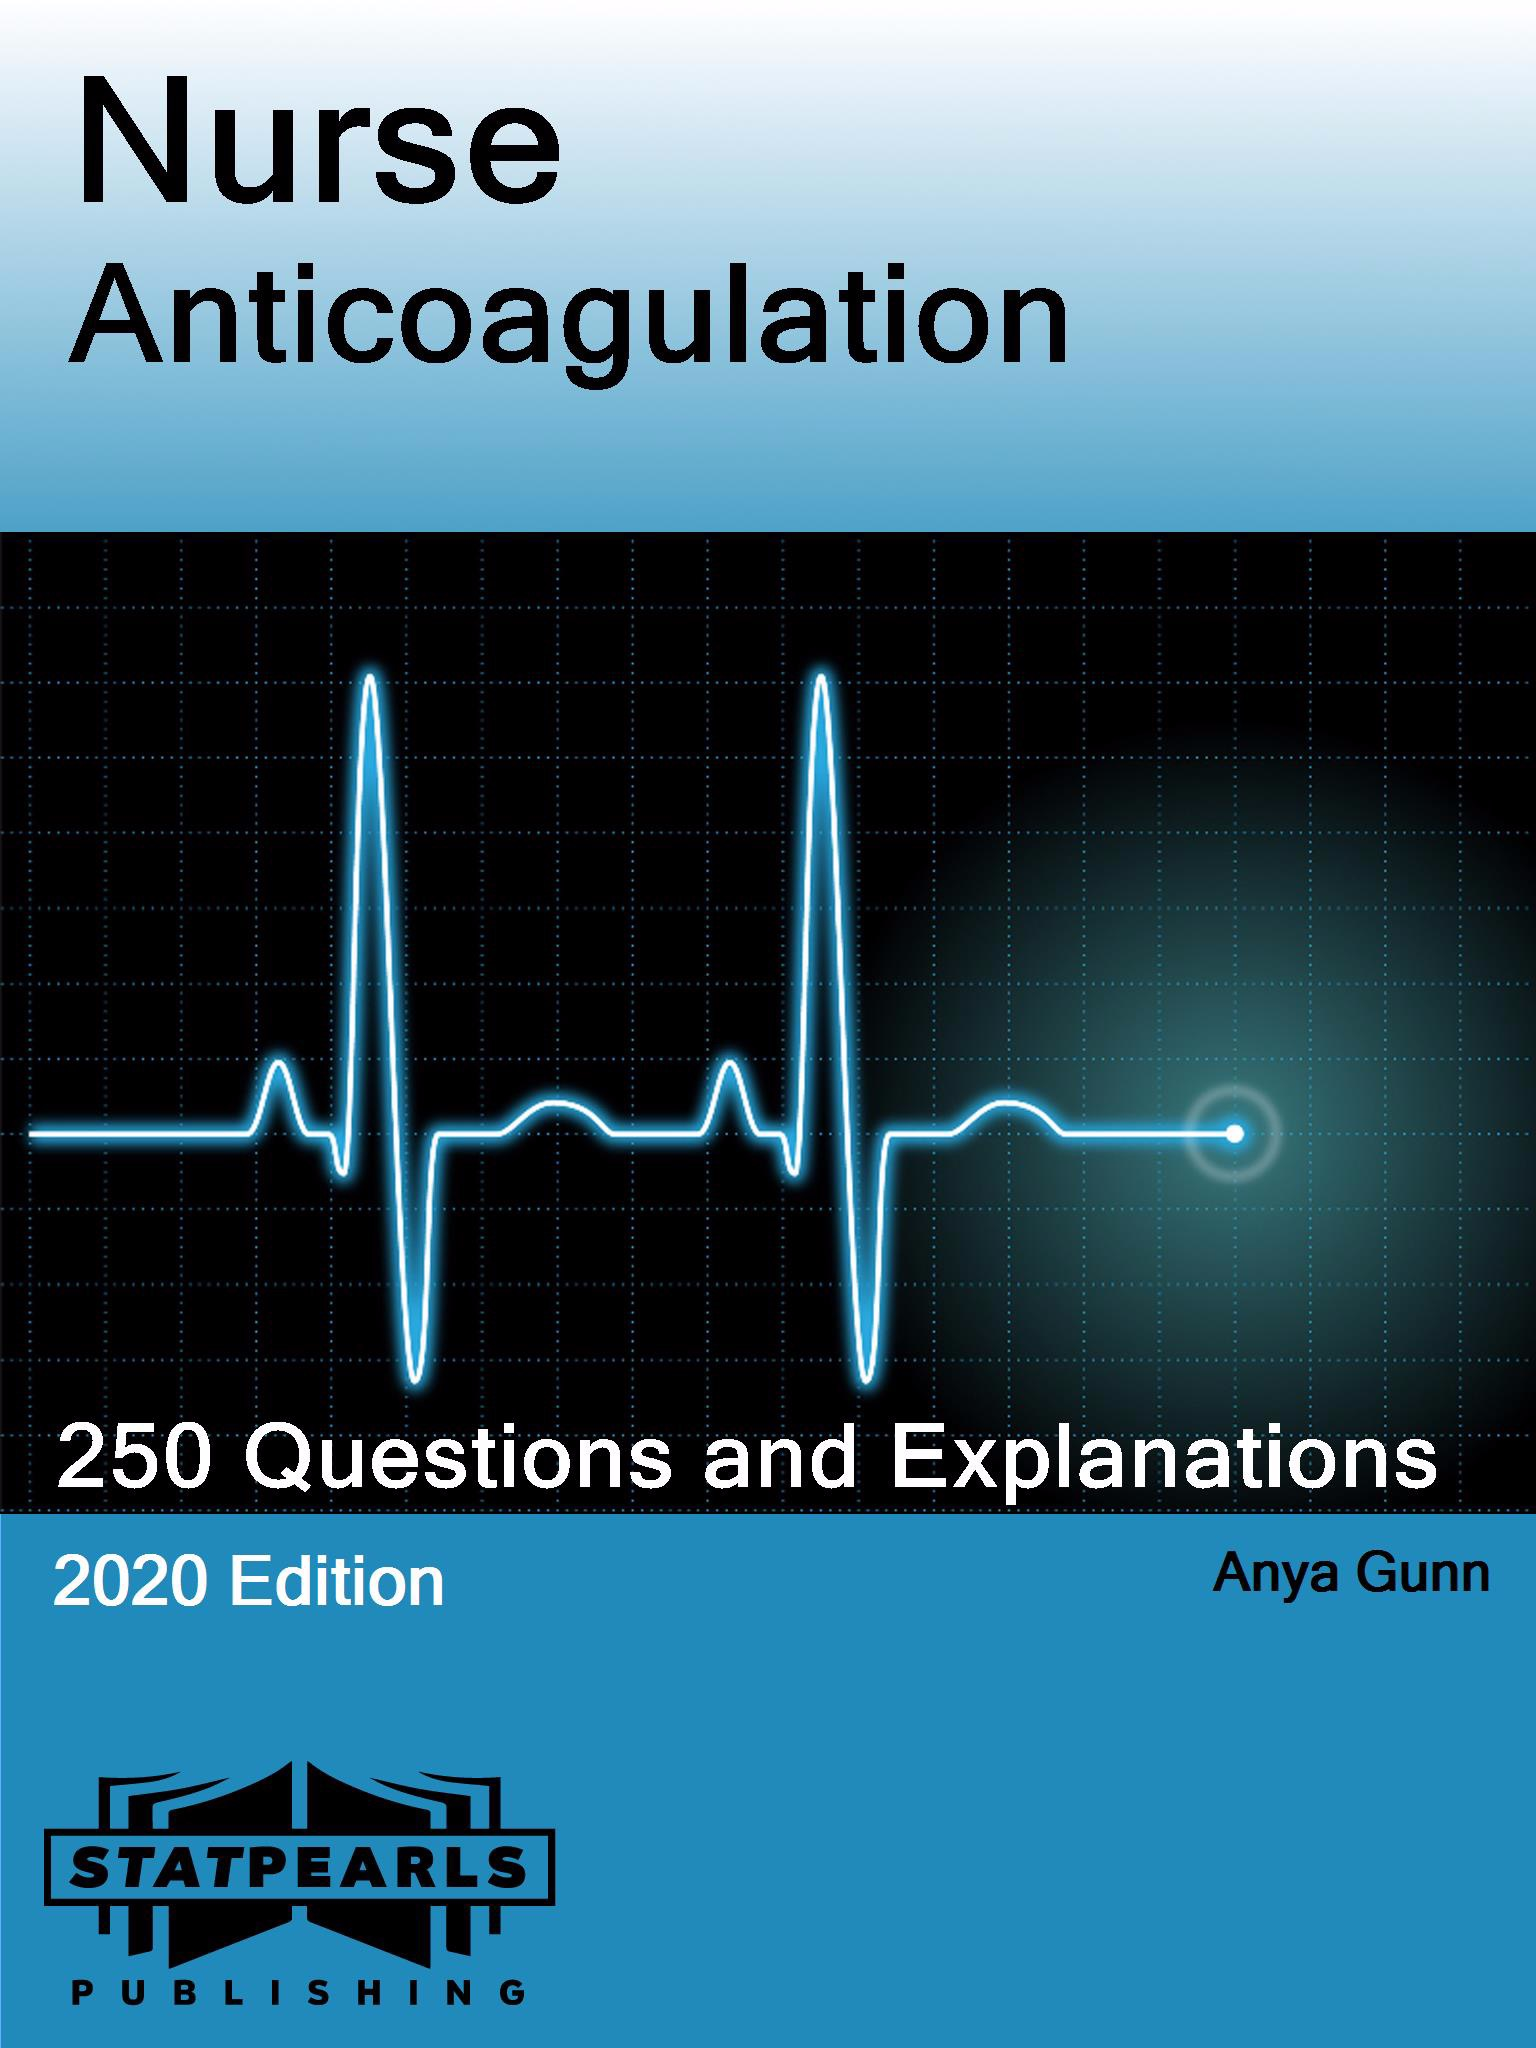 Nurse Anticoagulation